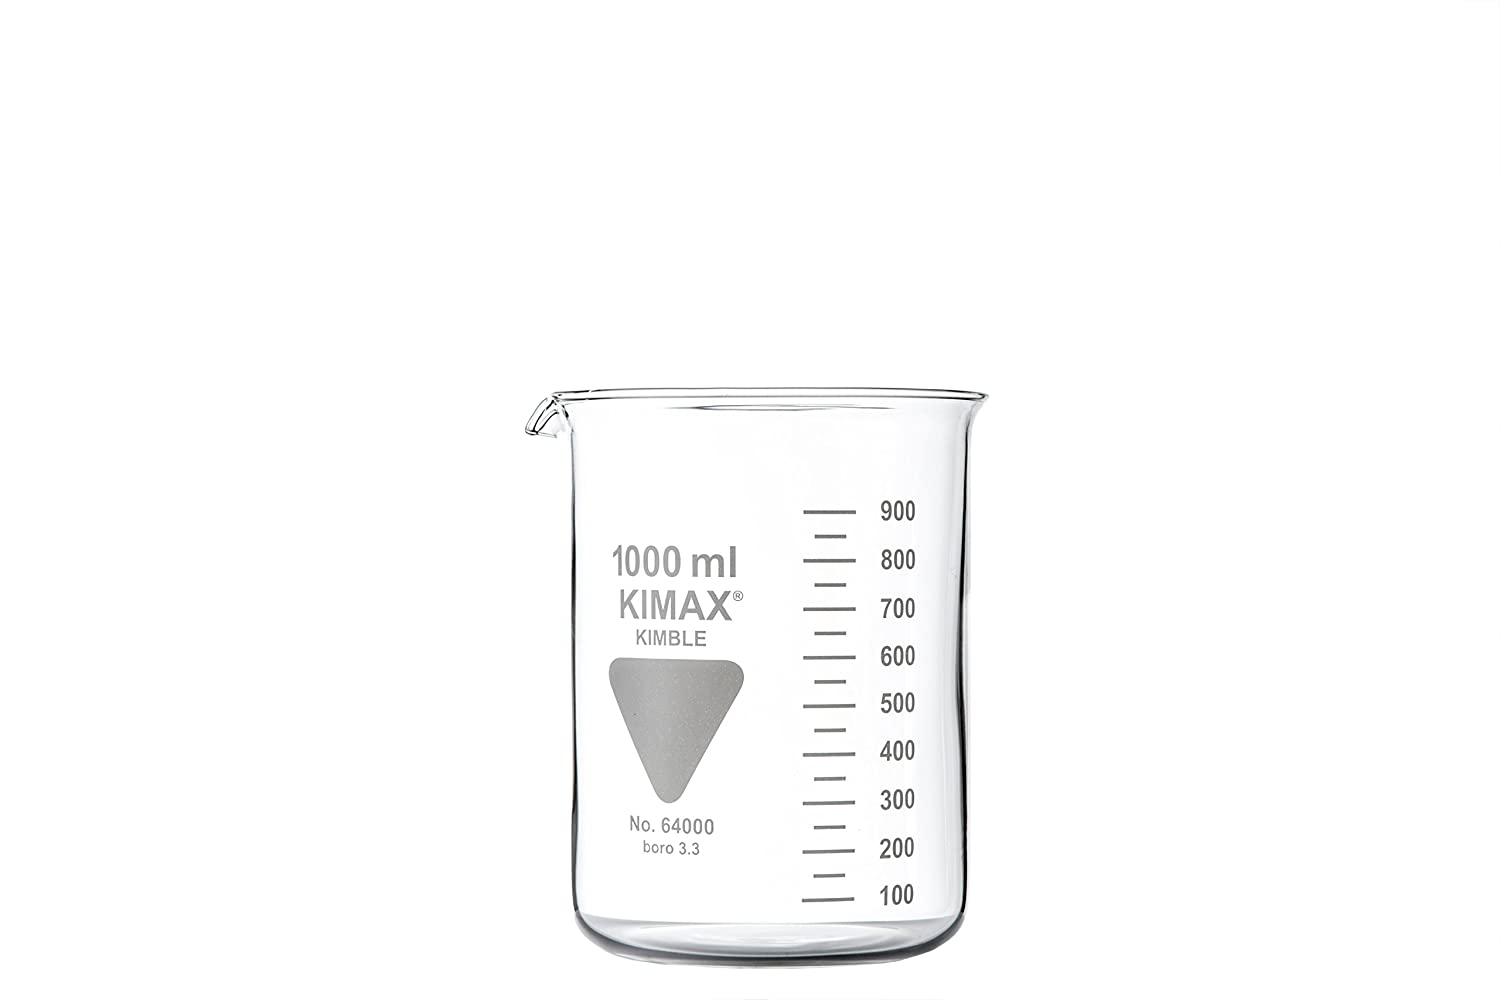 Neolab 1  Bath Beaker Low Form With Spout, Kimax Borosilicate Glass 3.3, 1000  ml 1000 ml 1-0159